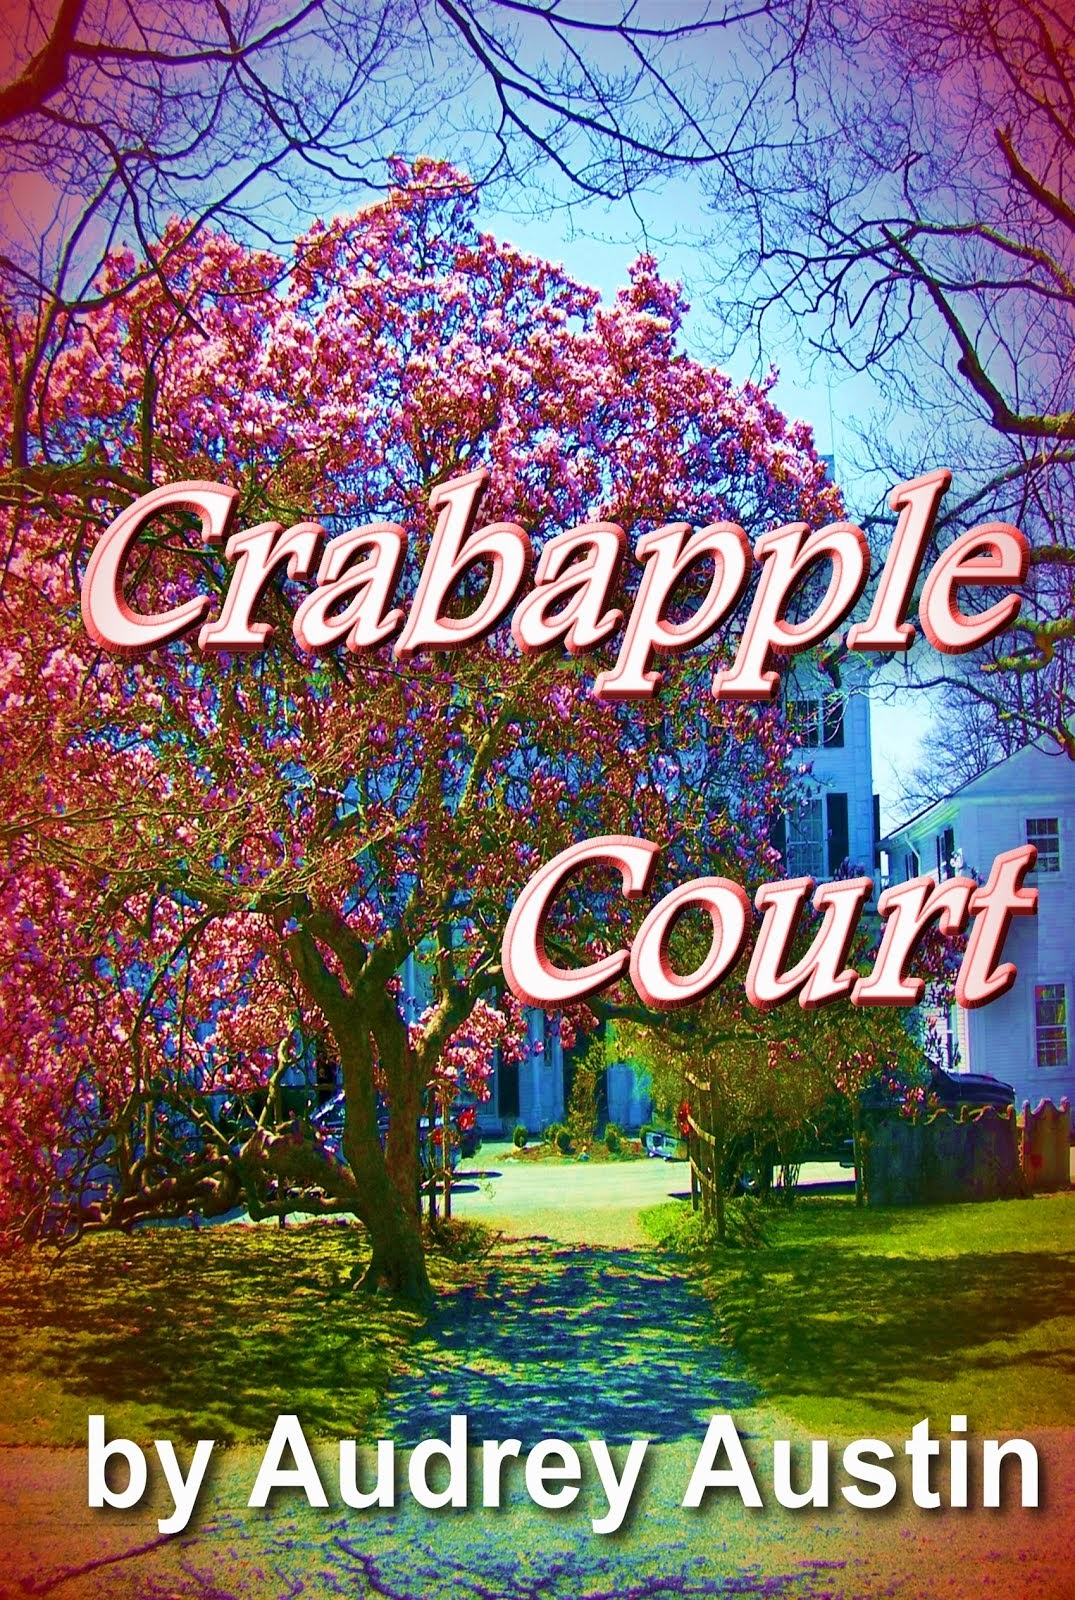 Crabapple Court